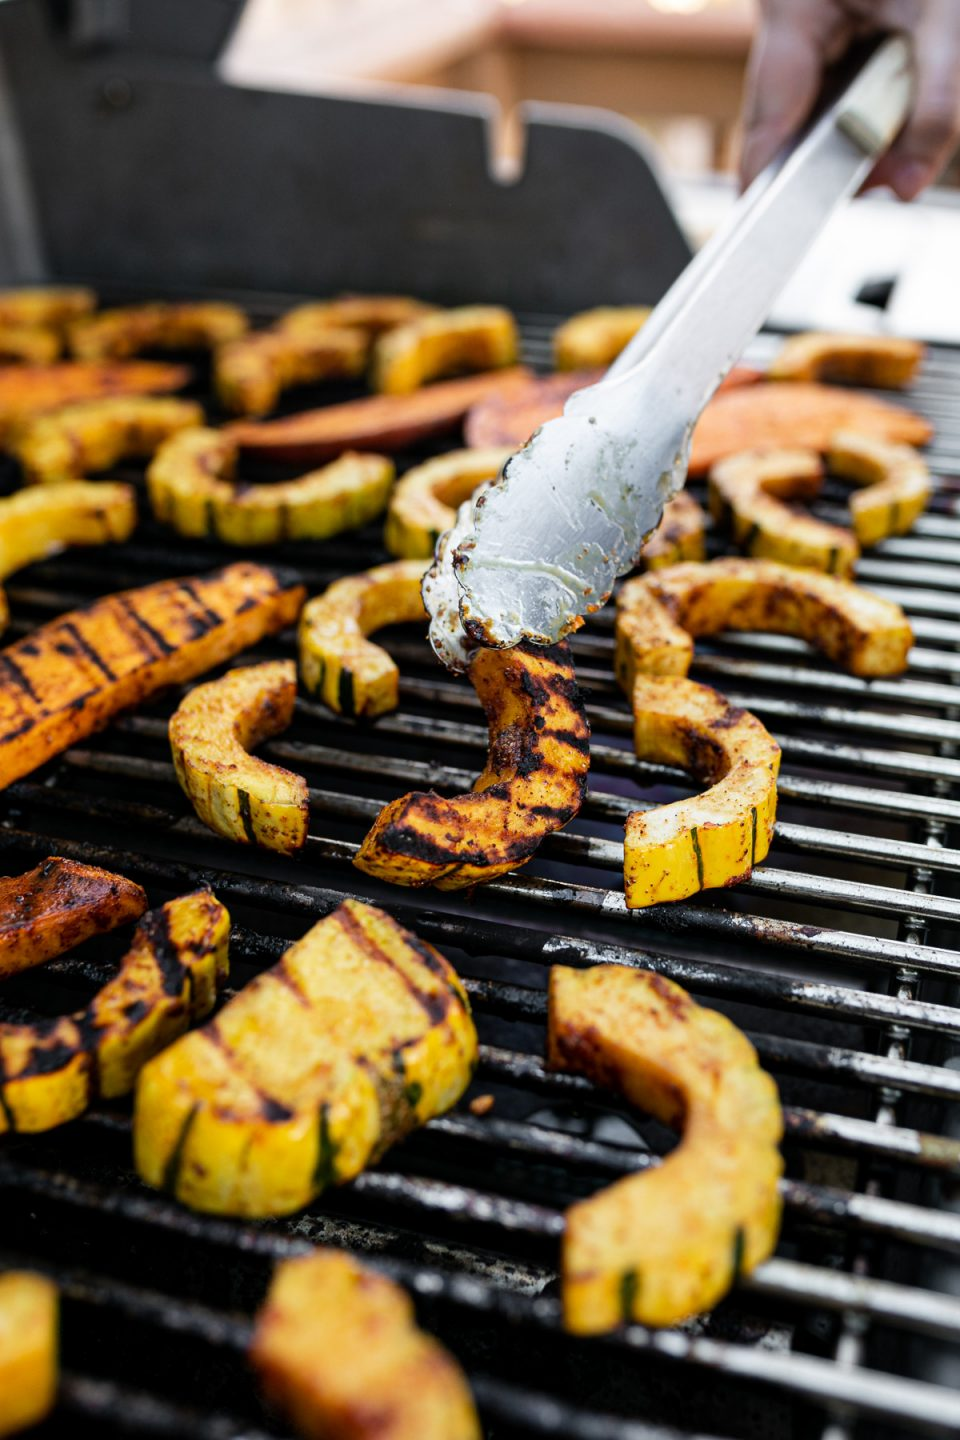 Grill tongs reaching into frame, flipping spiced delicata squash on the grill grates.